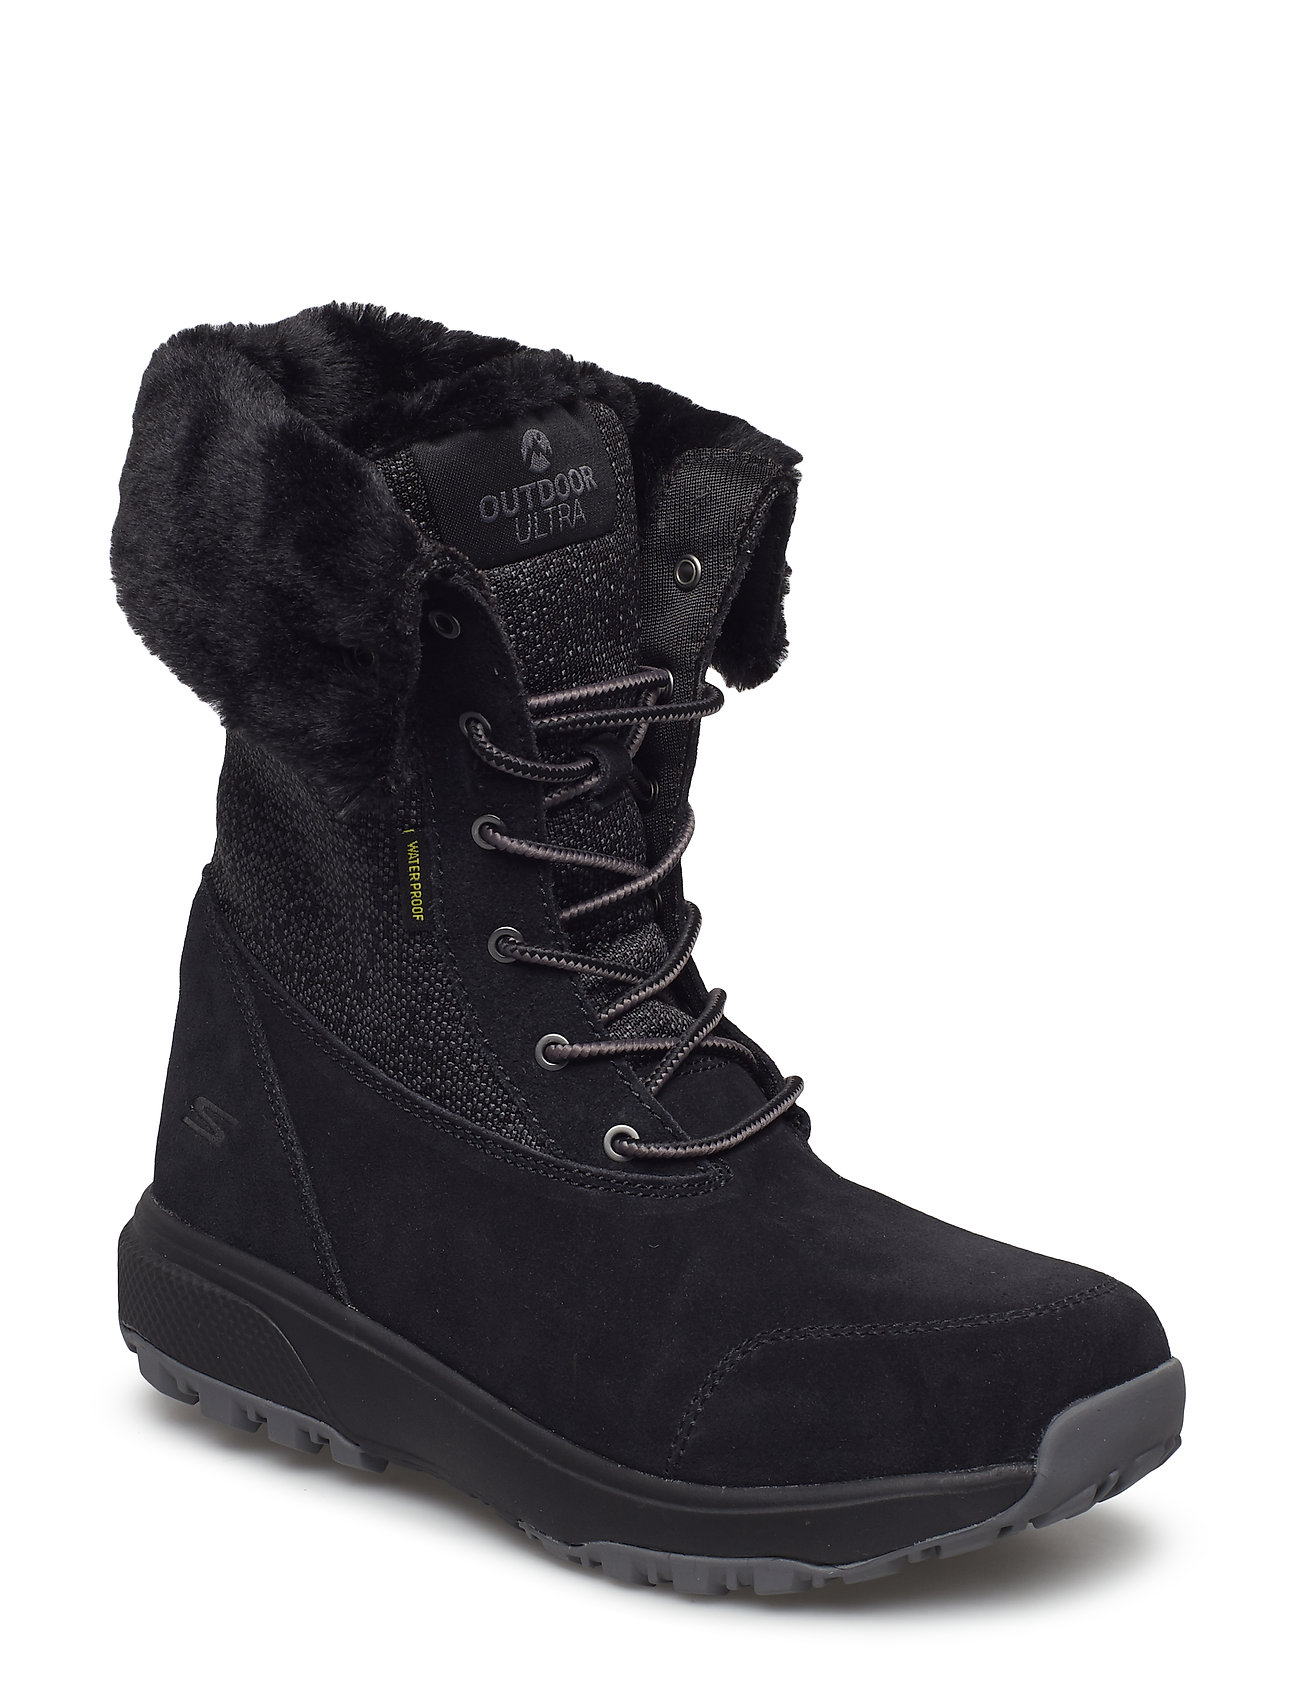 Image of Womens Outdoors Ultra - Waterproof Shoes Boots Ankle Boots Ankle Boot - Flat Sort Skechers (3439724851)